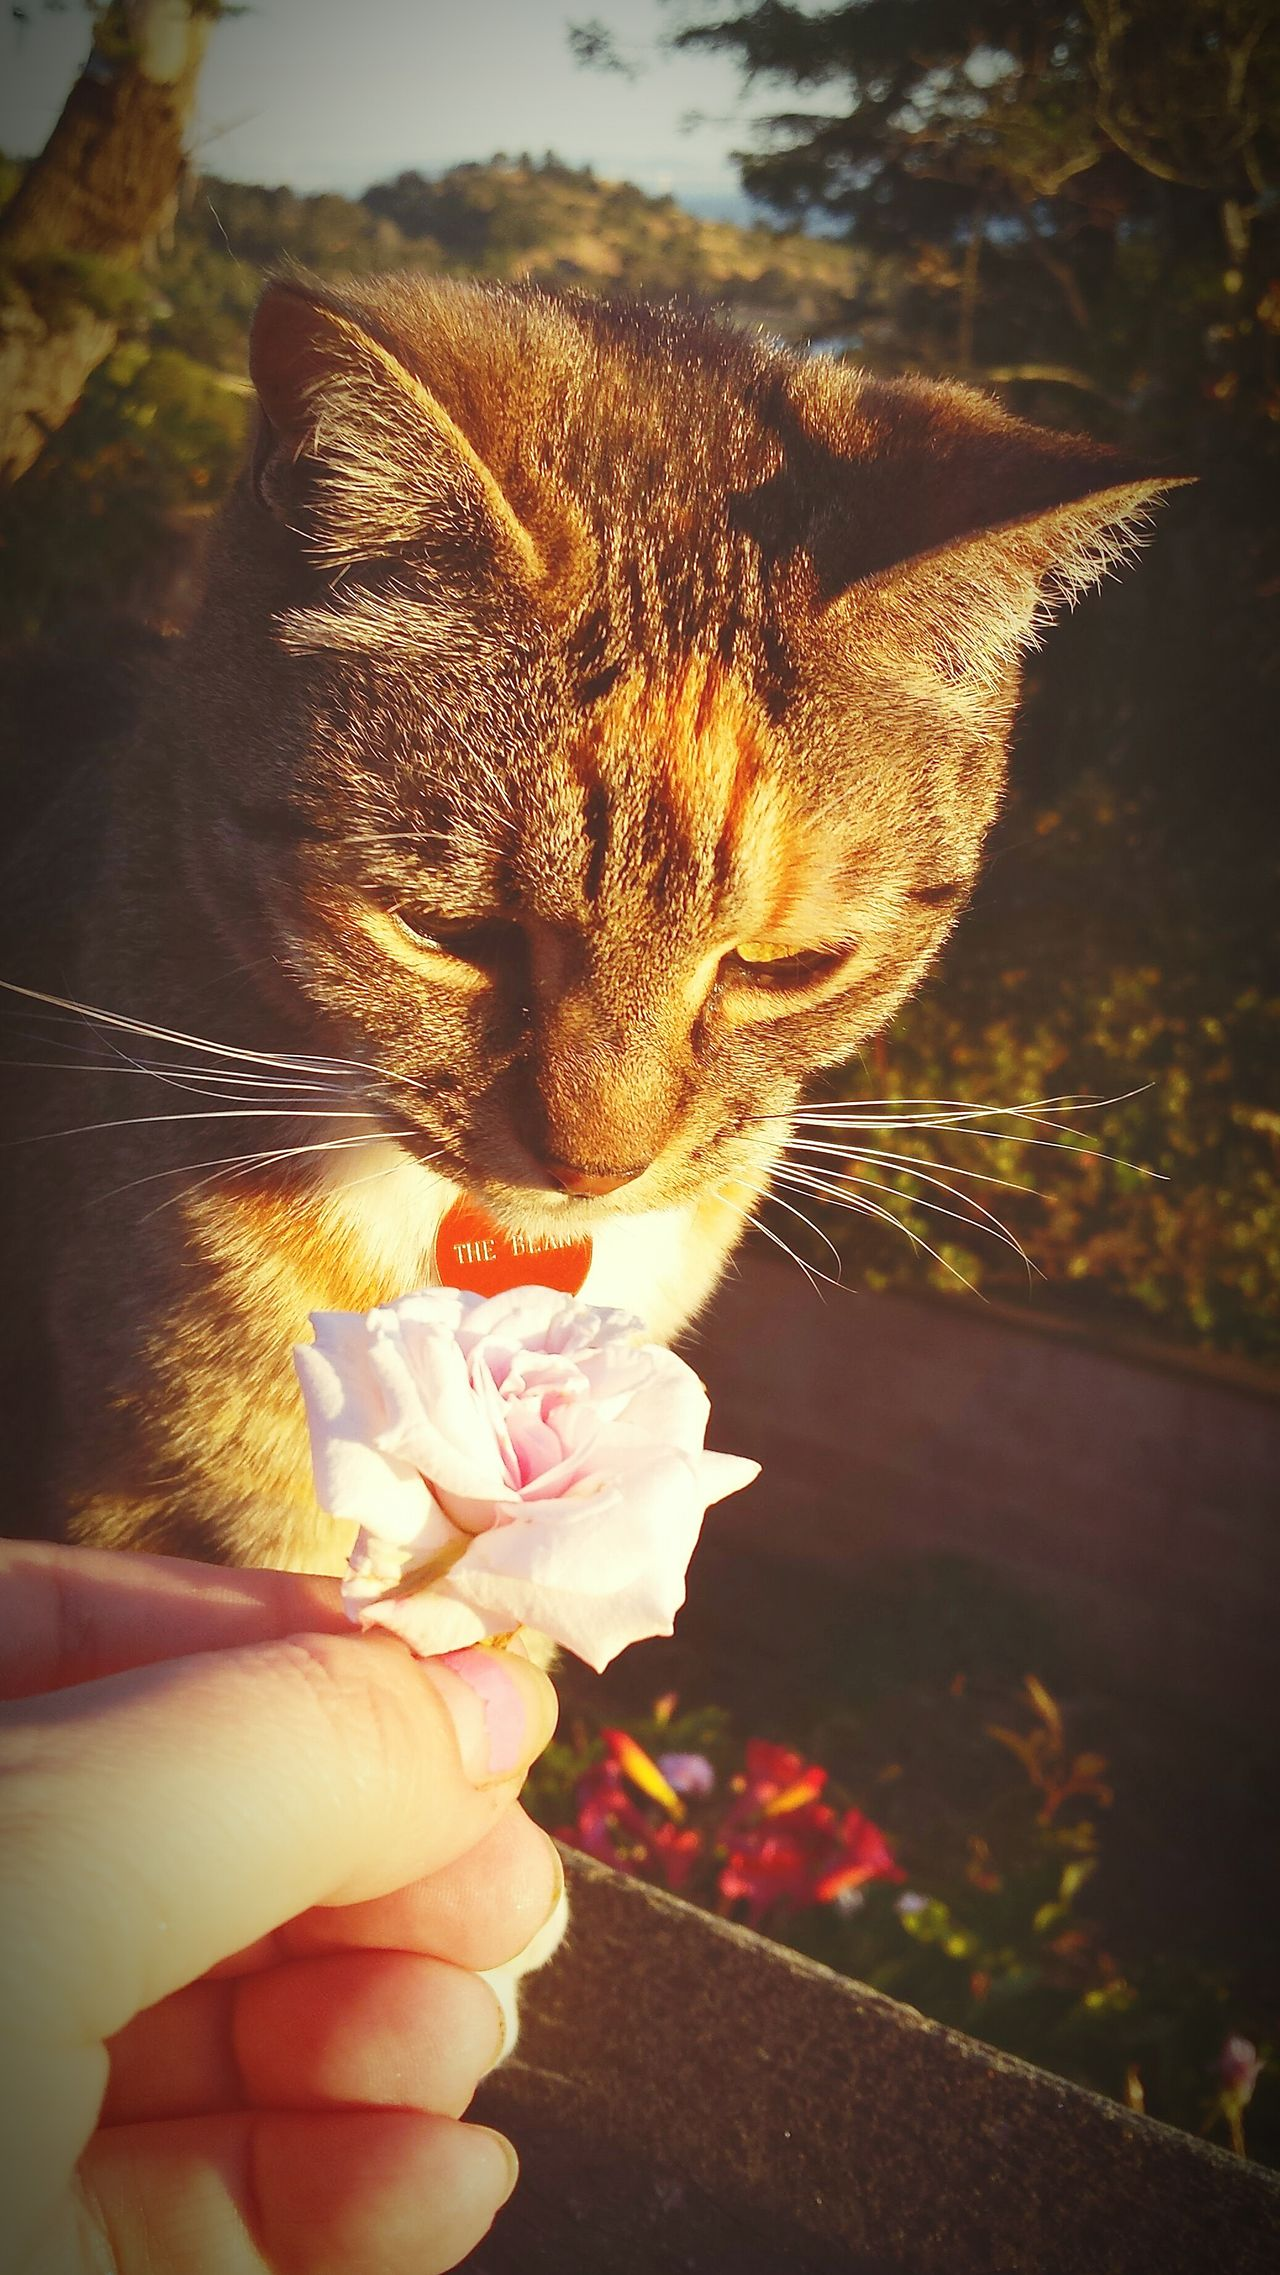 A rose offering to The Bean cat at sunset. Rose Flower Cat Offering California Sunshine California Dreaming California Sunset California Love Magic Hour Catlady Showcase July 43 Golden Moments